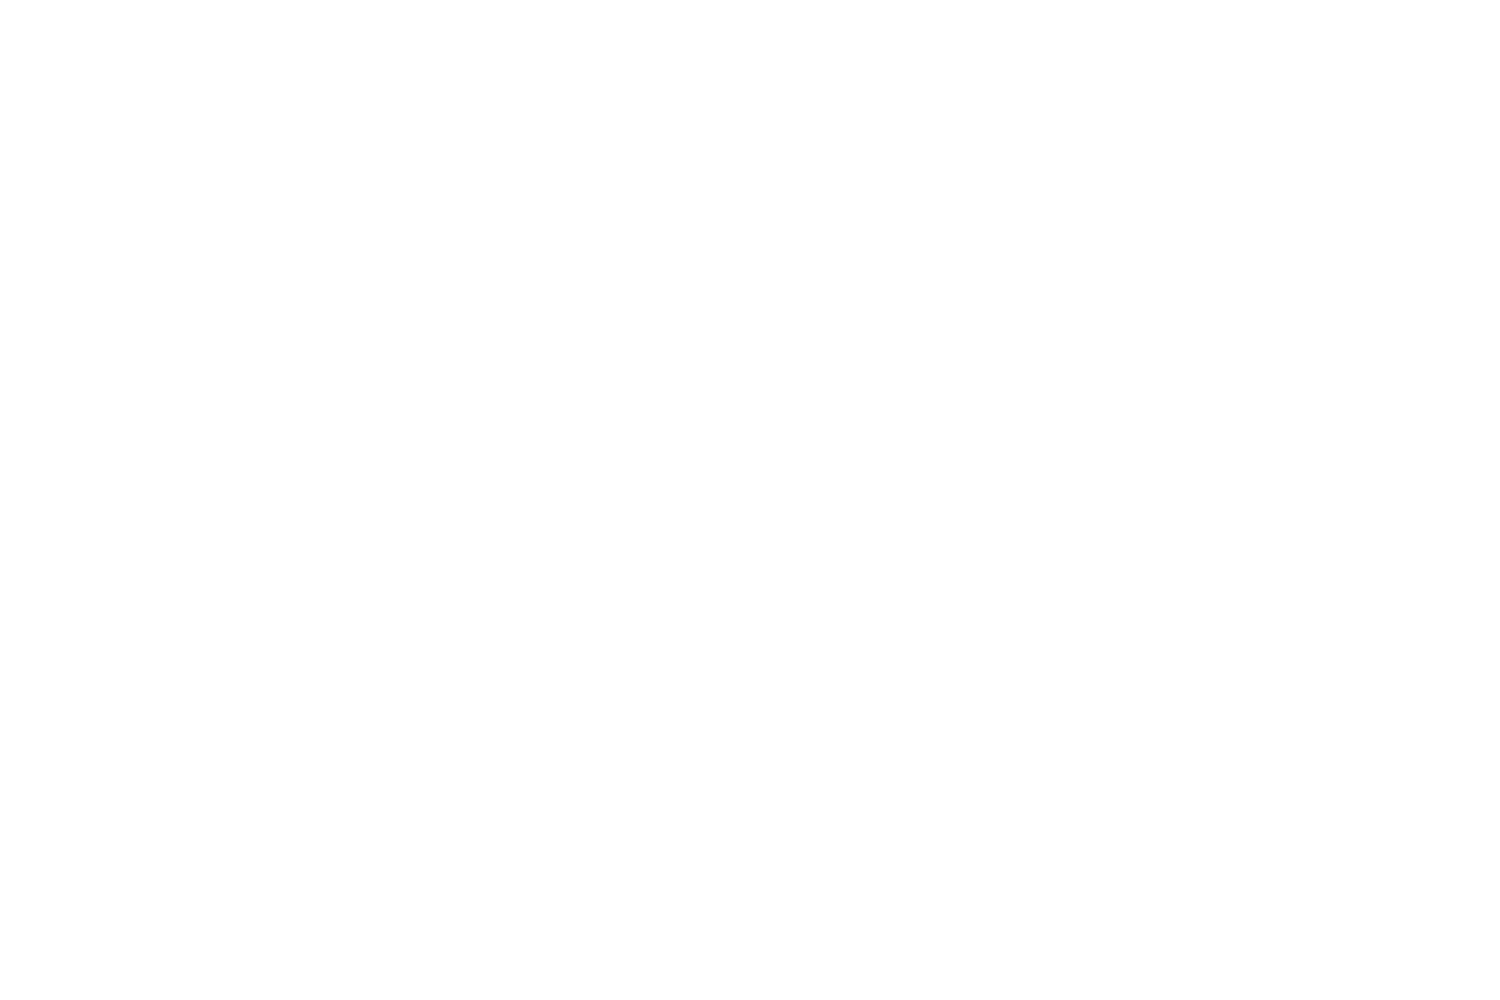 LauraJane.co